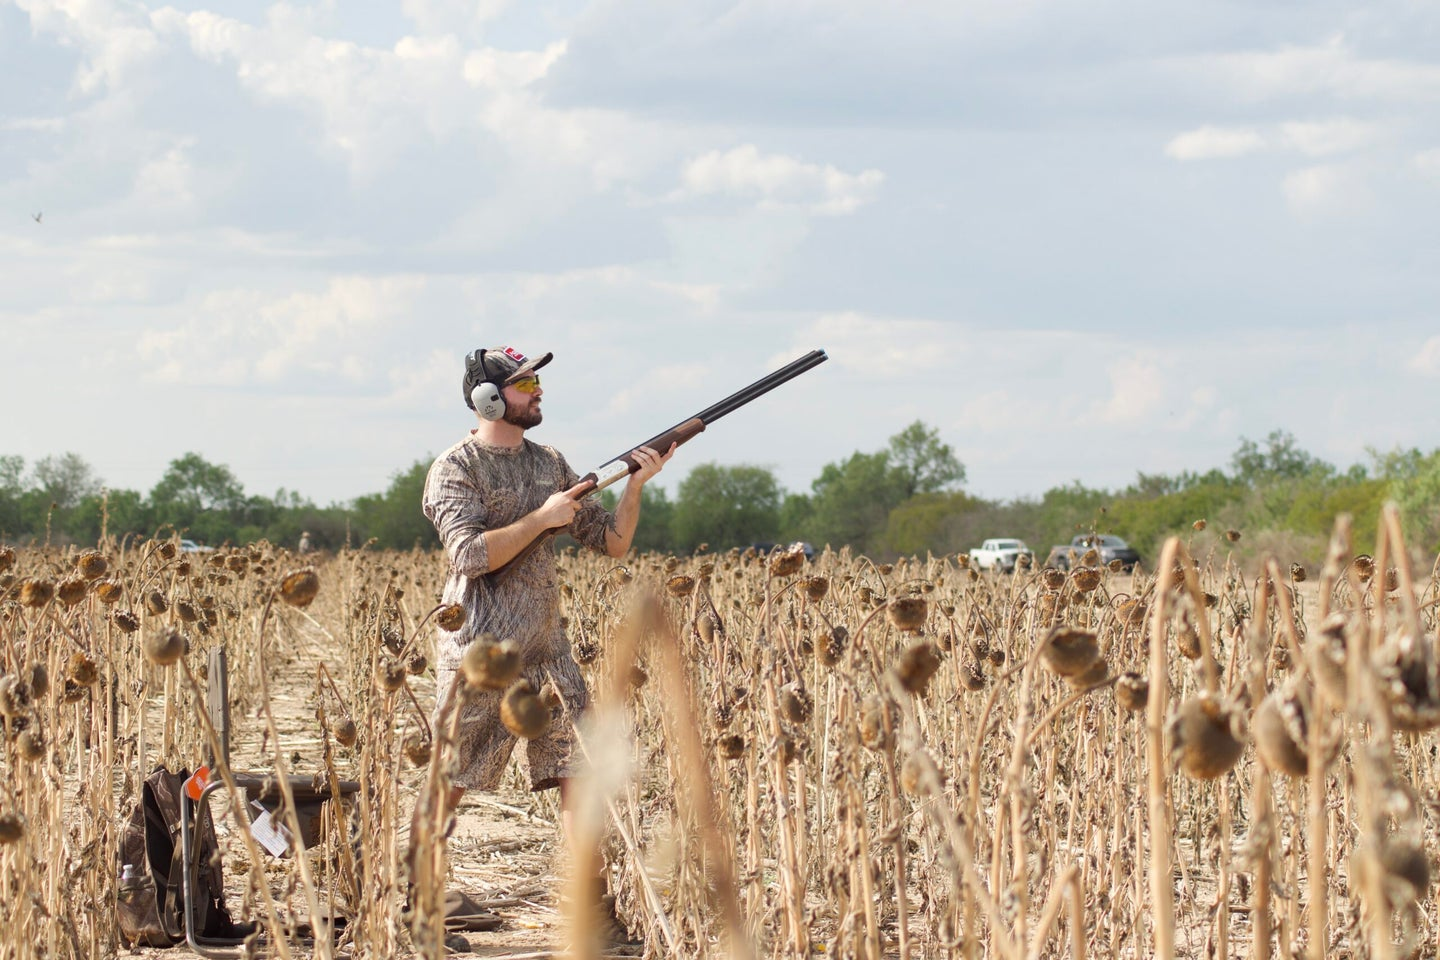 You don't need to spend big to get a workhorse shotgun.